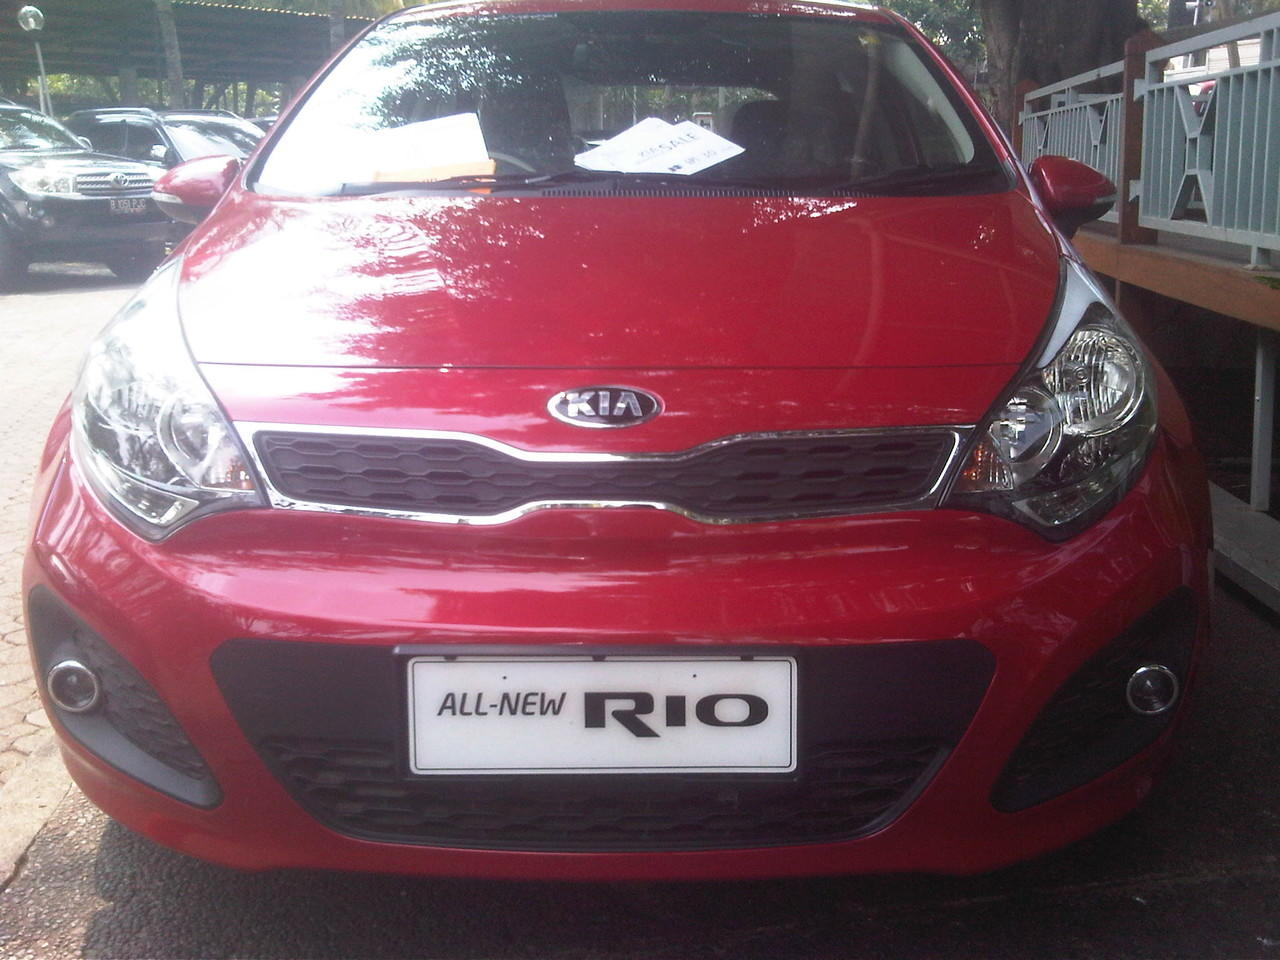 dijual kia all new rio unit ready stock promo free headunit,dll